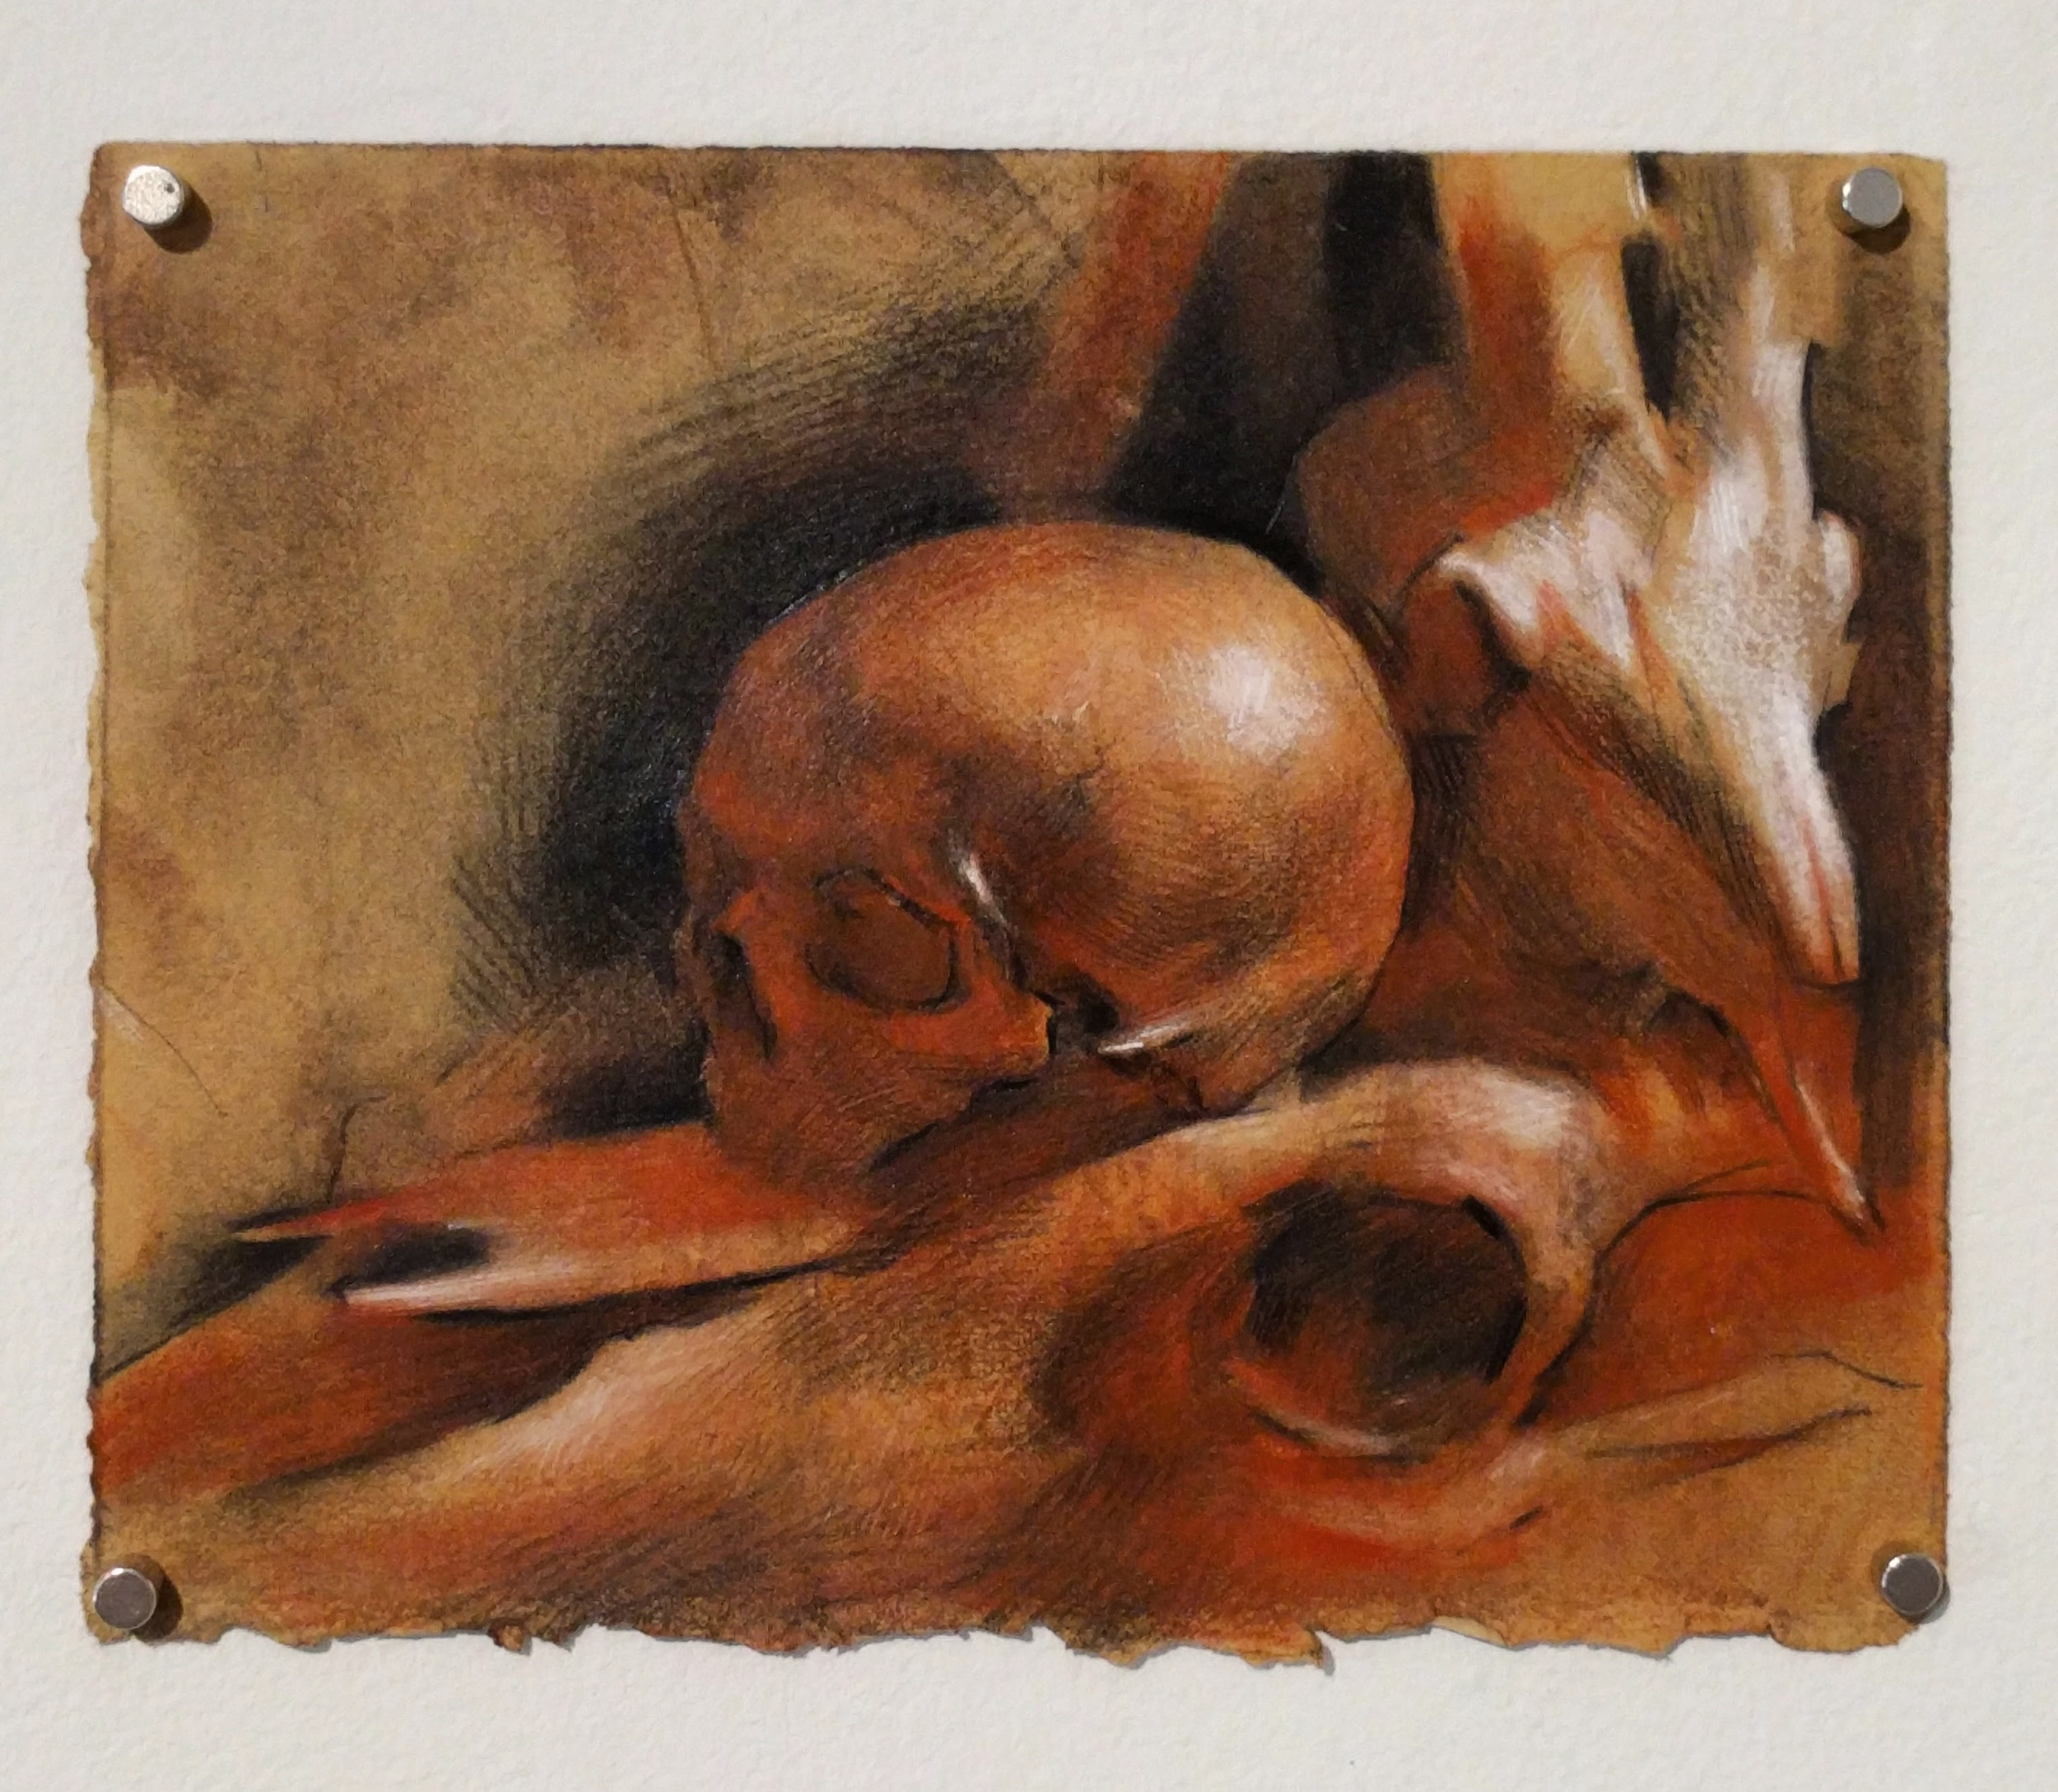 """Evan Kitson, """"Study for 'Ritual'"""" 2016 charcoal, red chalk, shellac on paper, 6 x 7 1/2 in."""